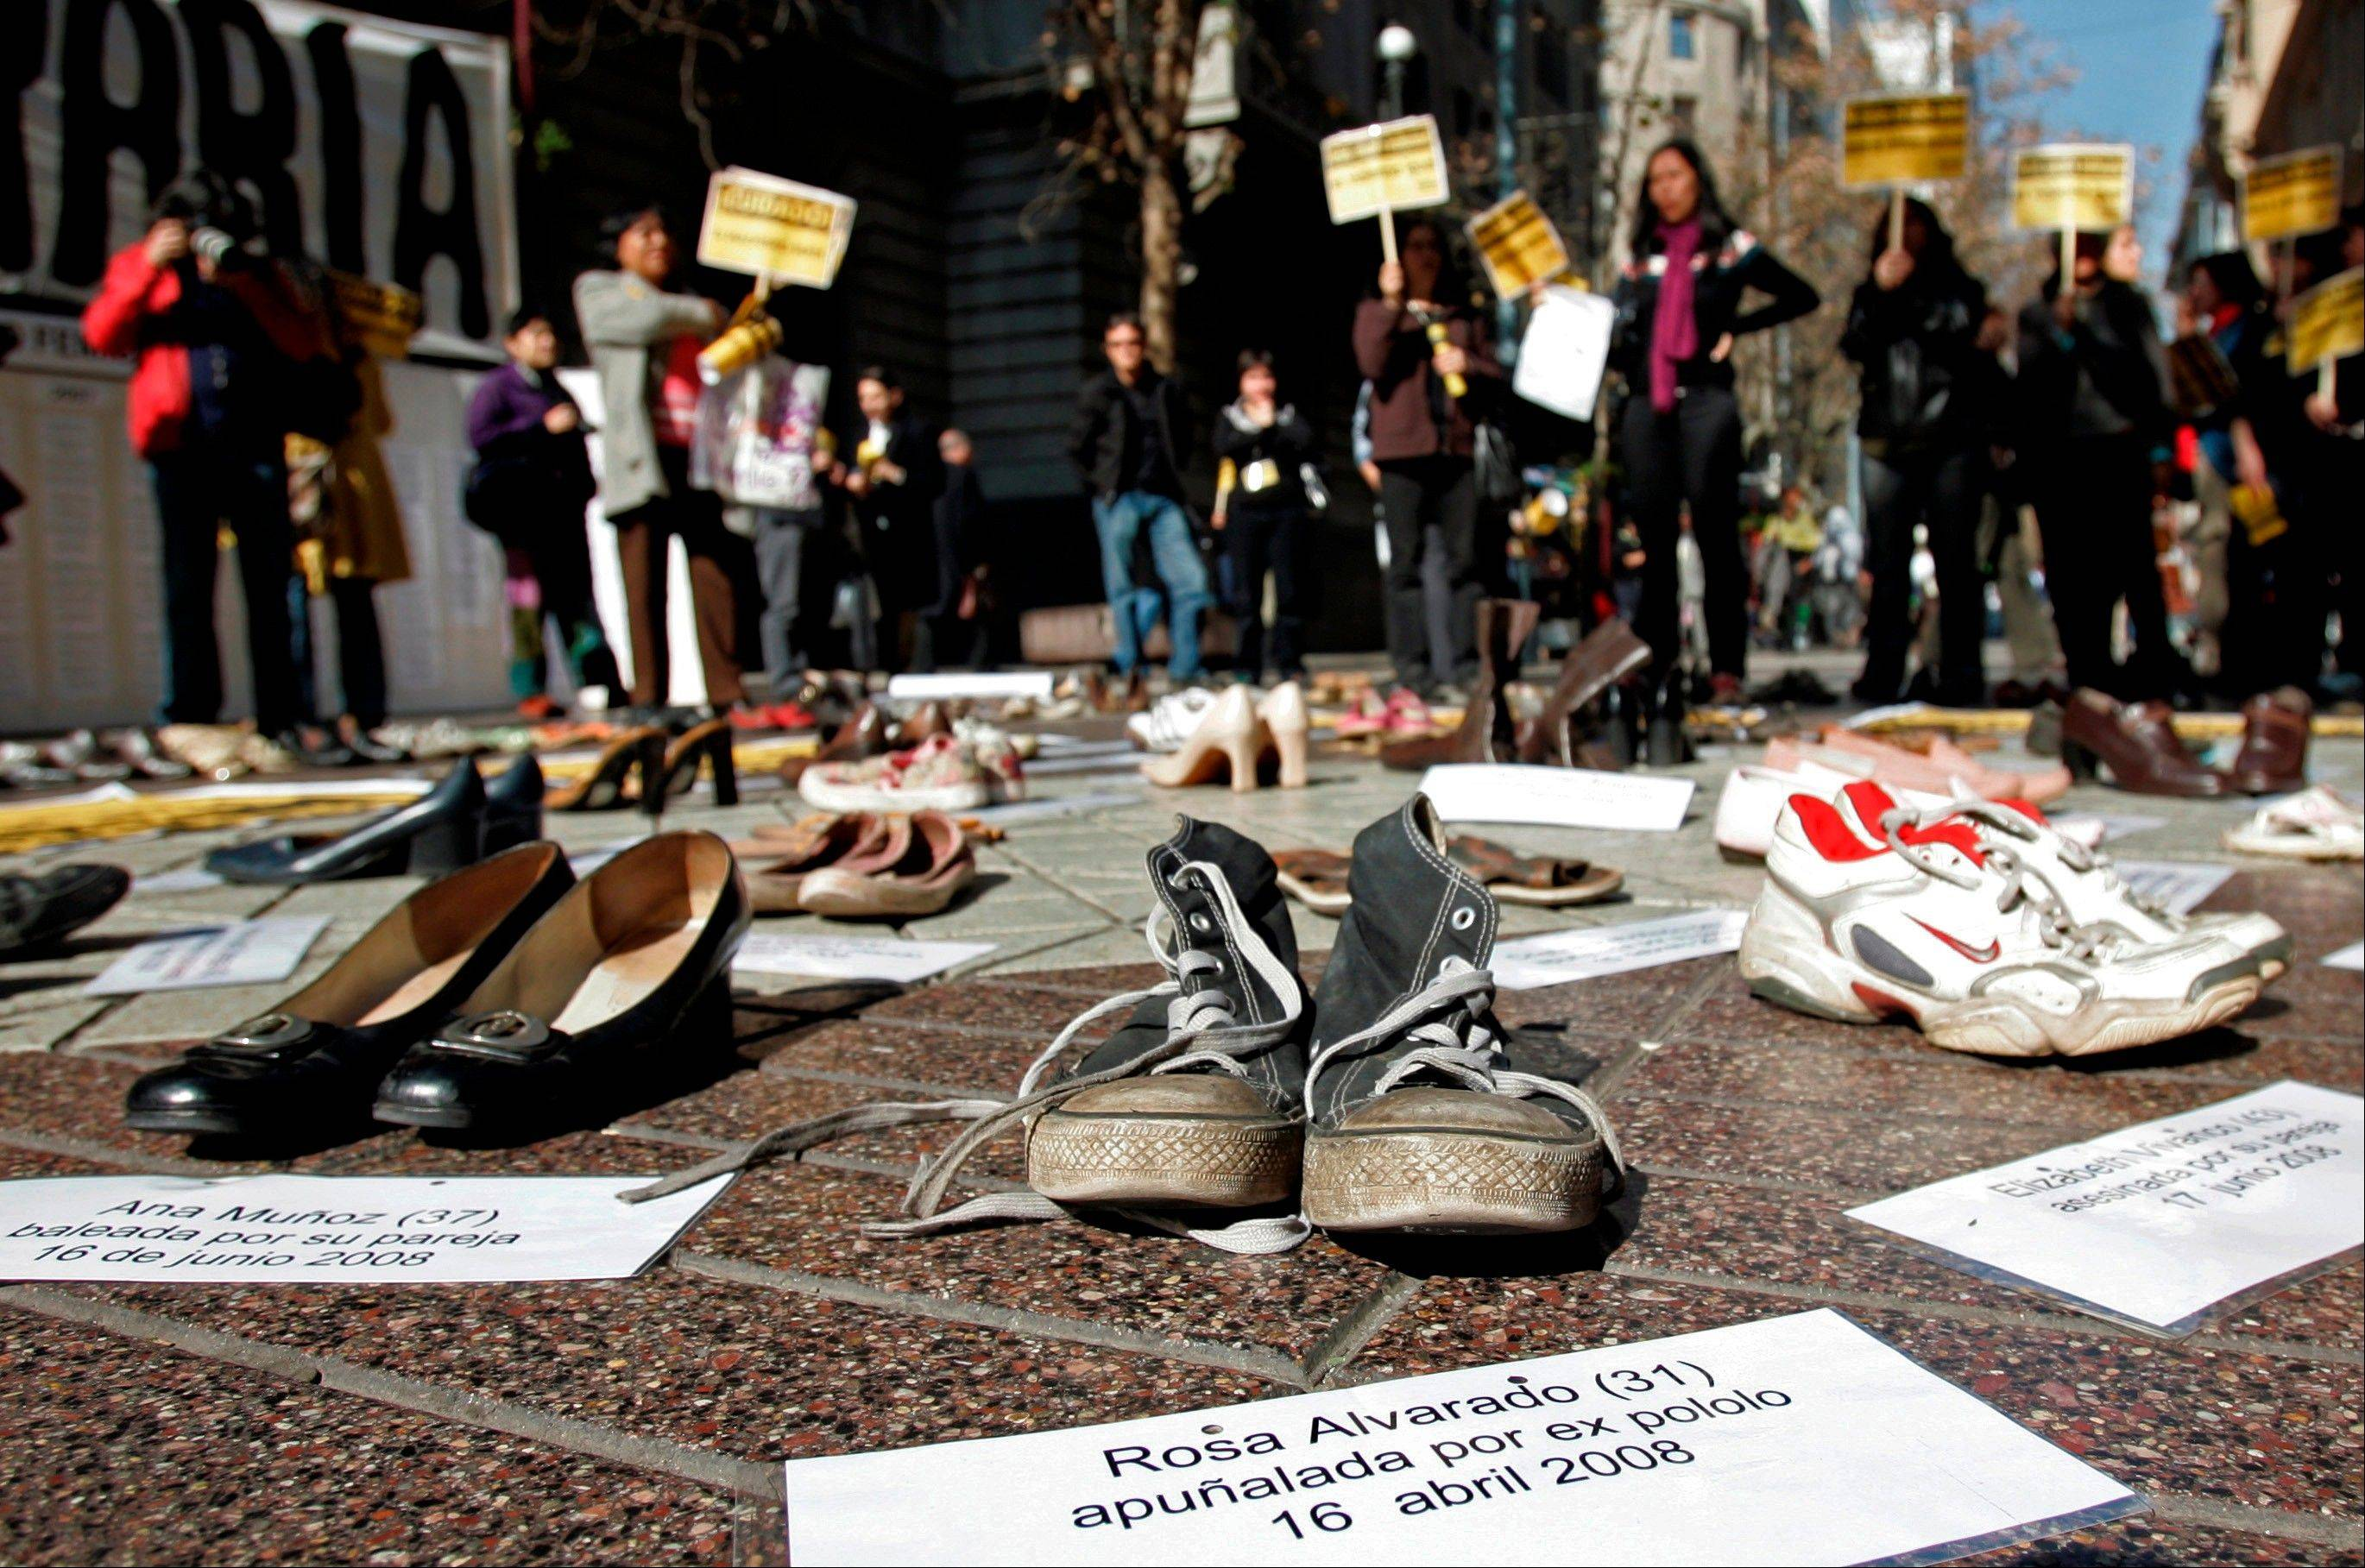 Shoes representing female victims of violence are displayed by protesters from the Chilean Network Against Domestic and Sexual Violence in Santiago. In a series of papers released on Thursday June 20, 2013, by the World Health Organization and others, experts estimated nearly 40 percent of women killed worldwide were slain by an intimate partner and that being assaulted by a partner was the most common kind of violence experienced by women.